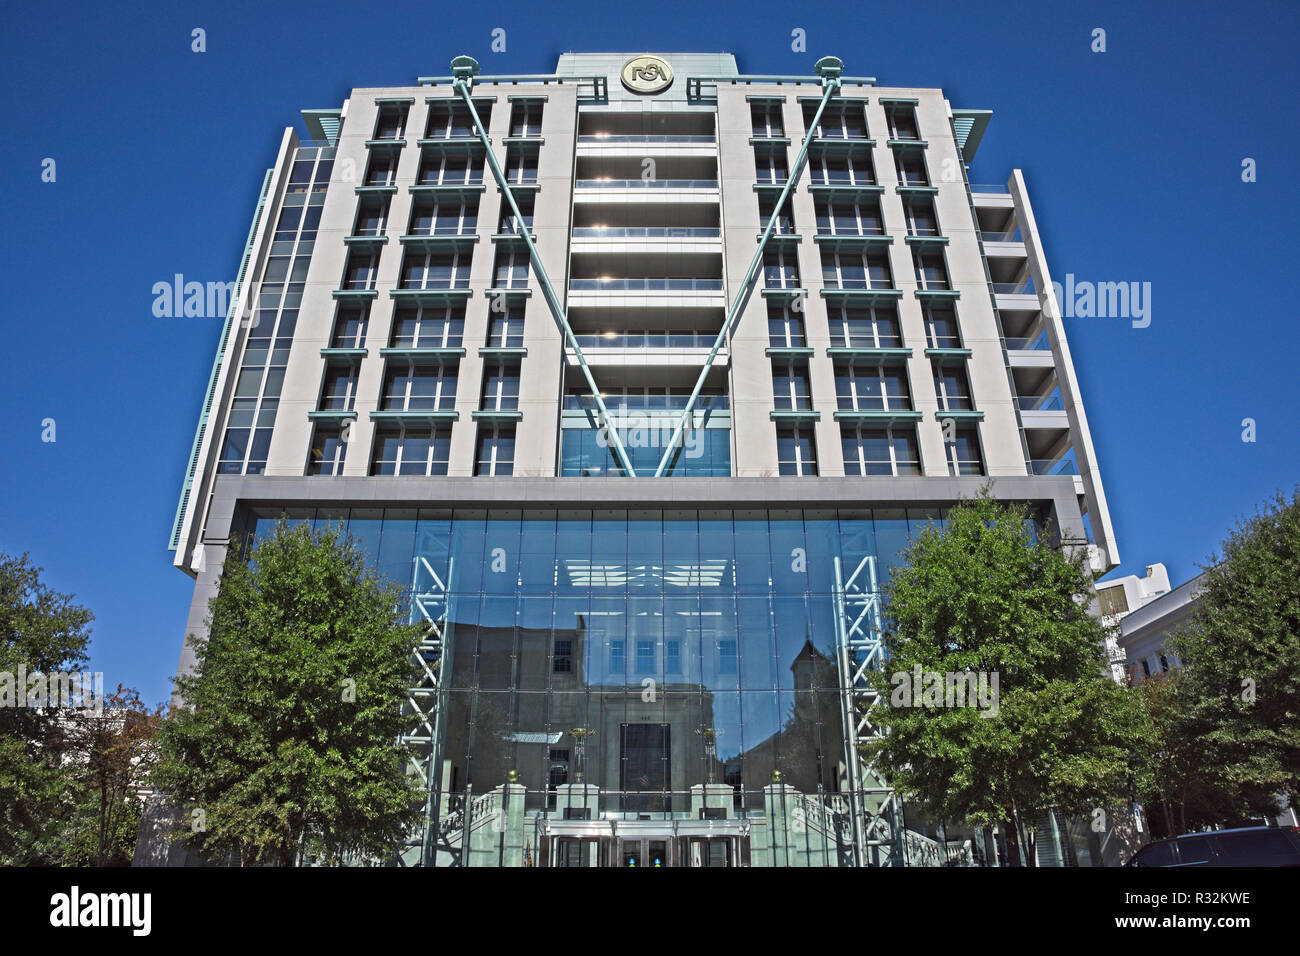 The RSA Dexter Avenue Tower a high rise office building from low angle in downtown Montgomery Alabama, USA. - Stock Image